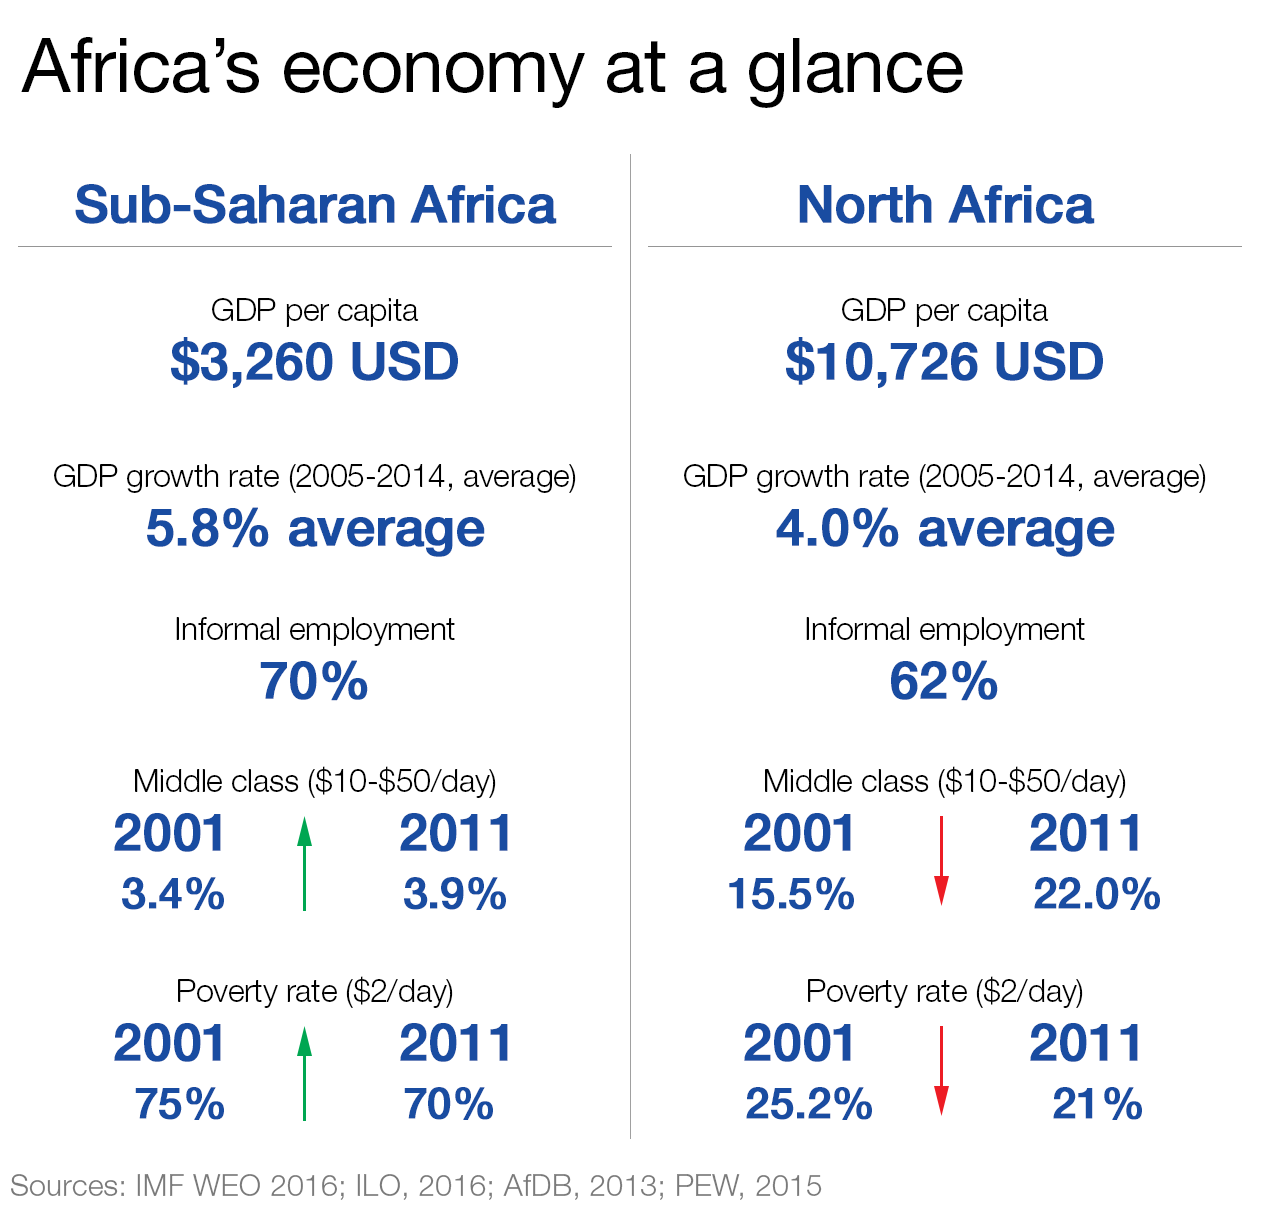 Africa's economy at a glance